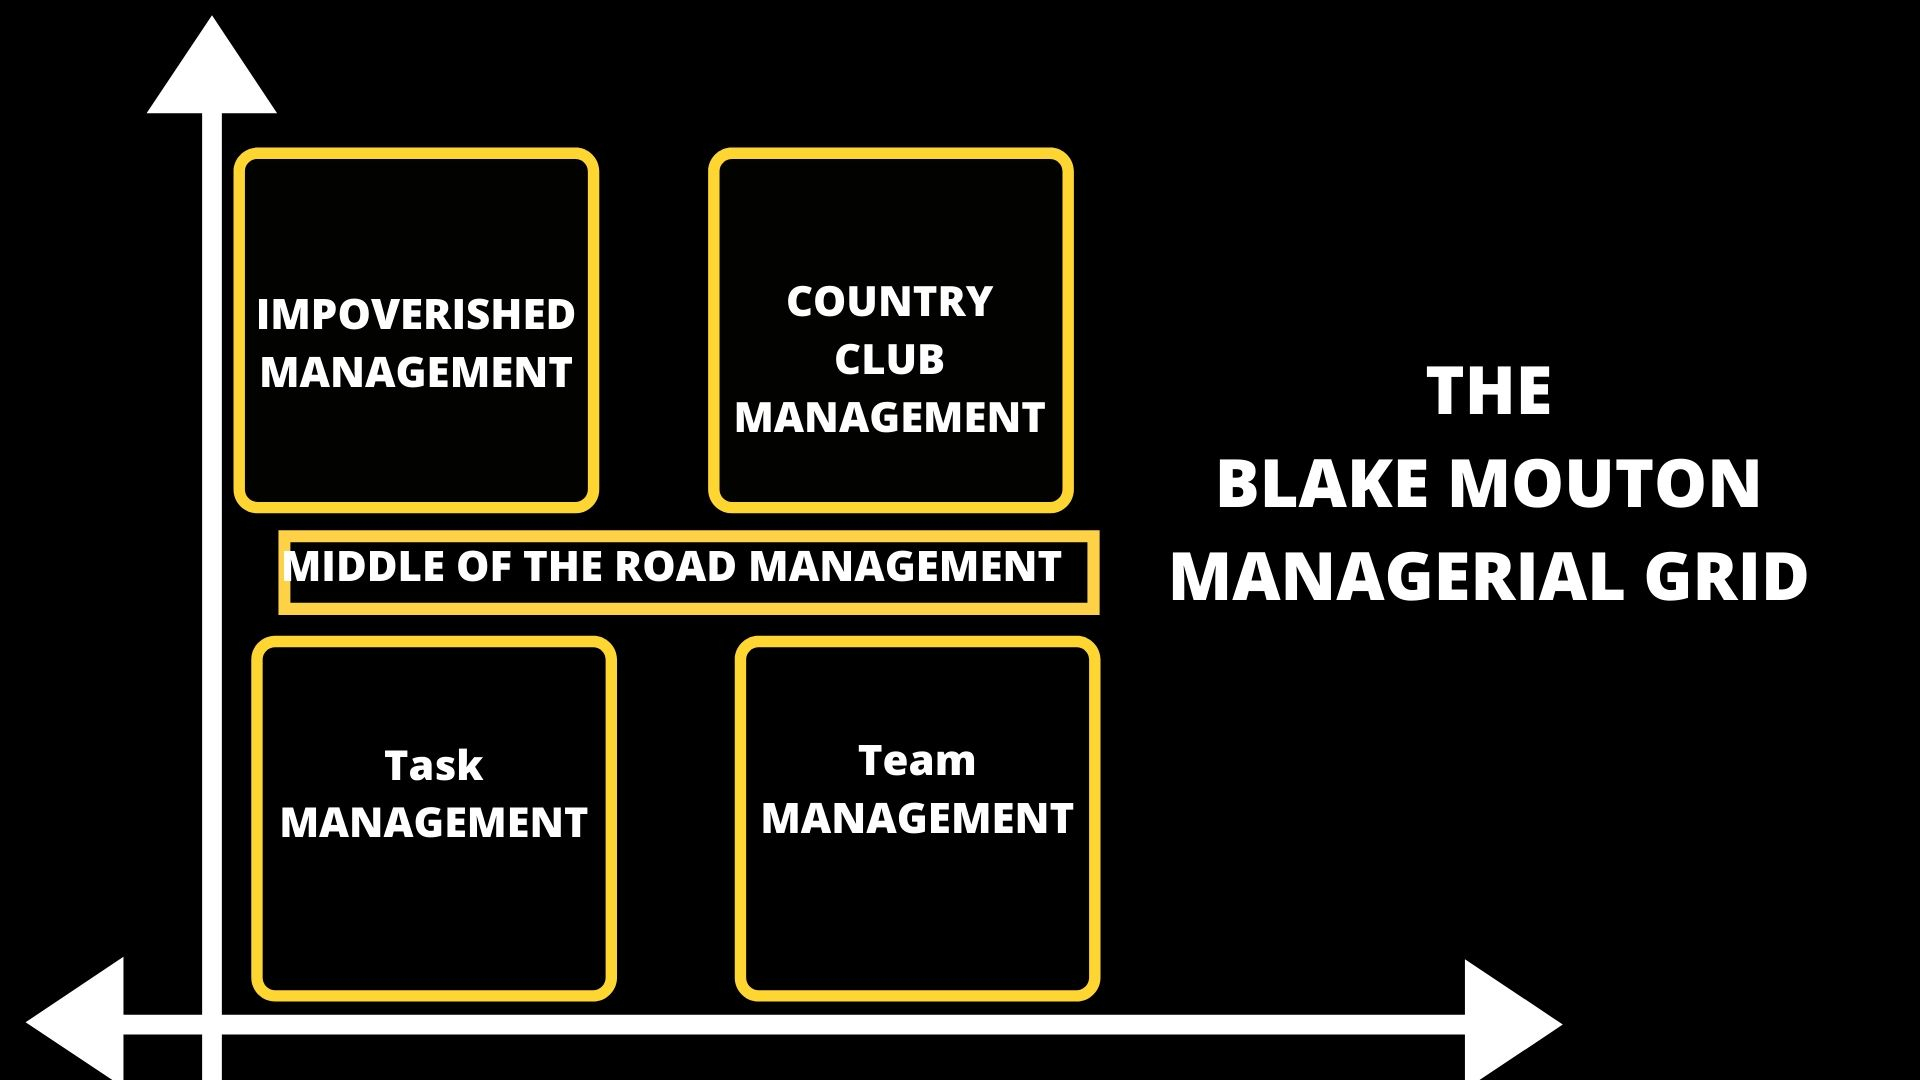 The Blake Mouton Managerial Grid